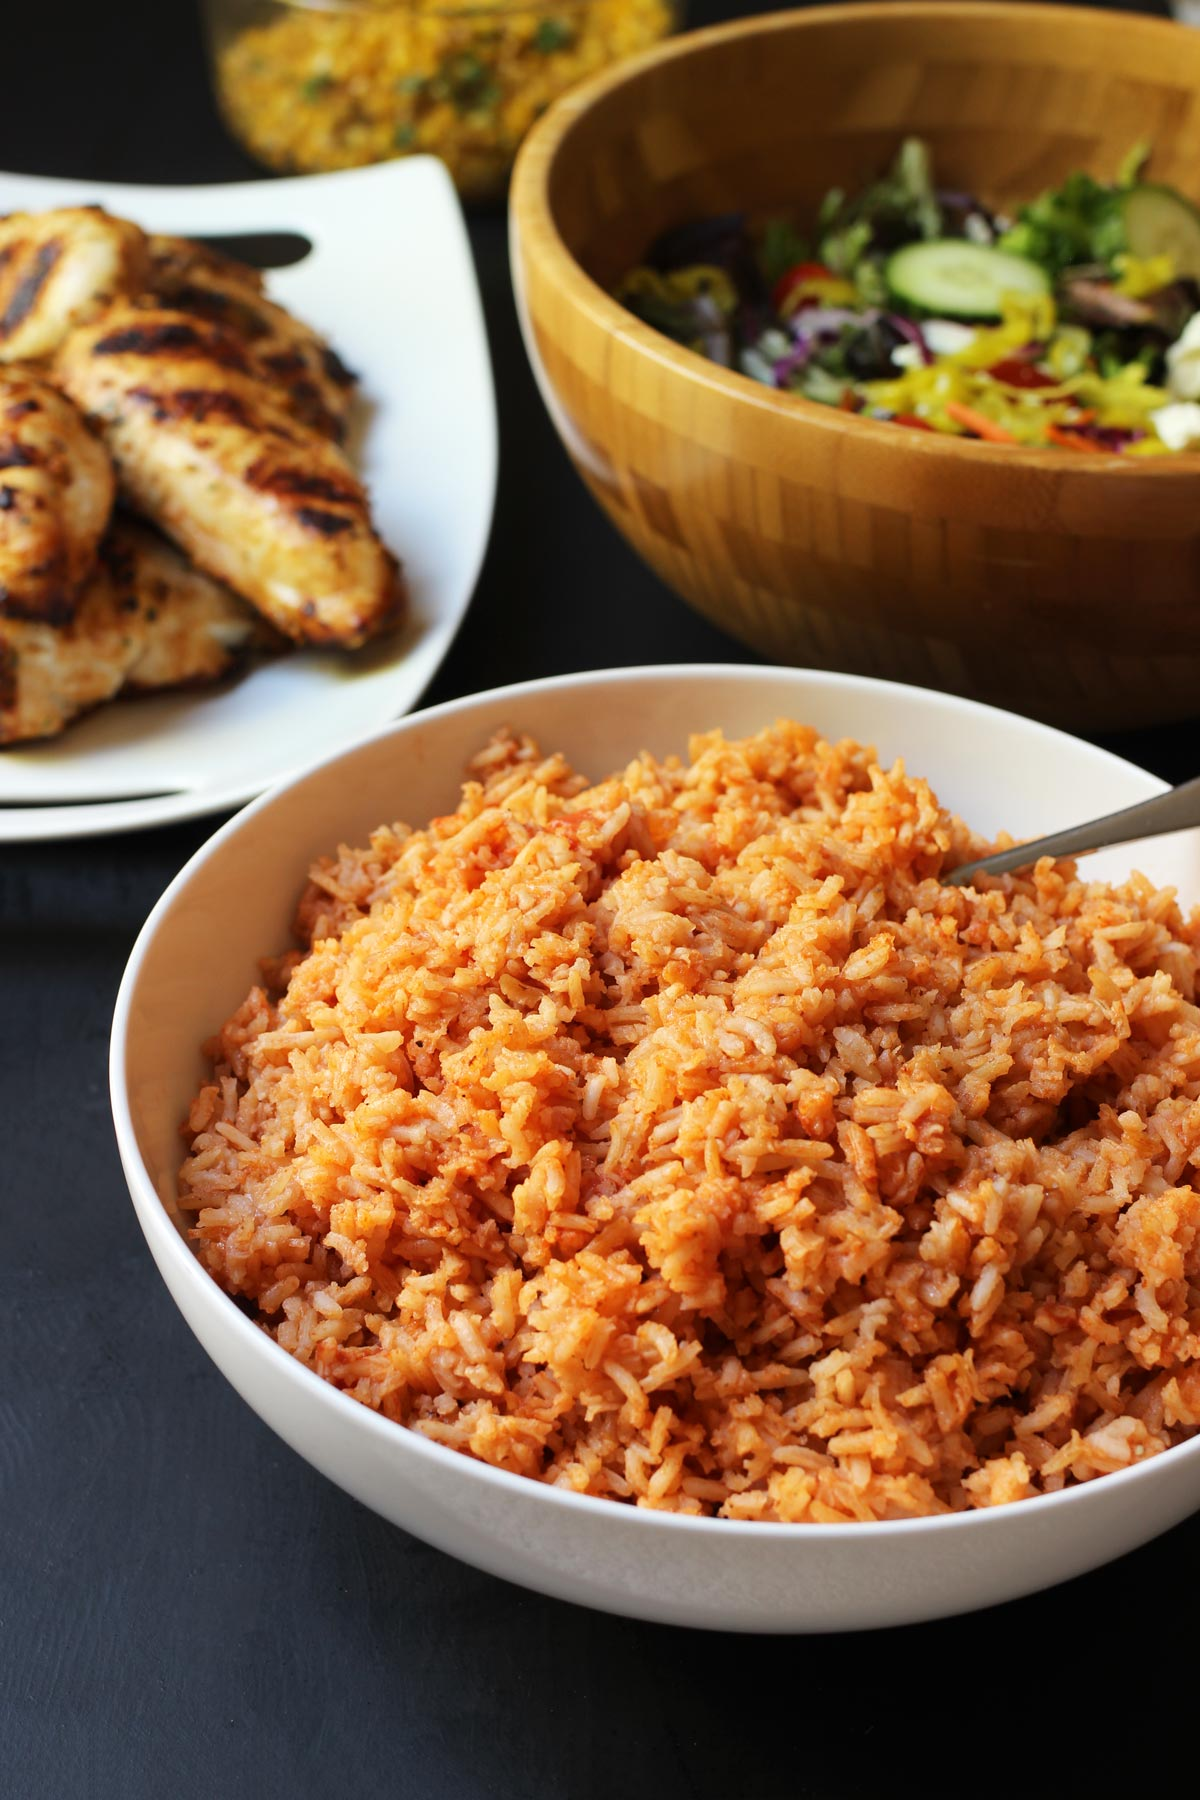 bowl of Mexican rice on dinner table with salad and chicken.